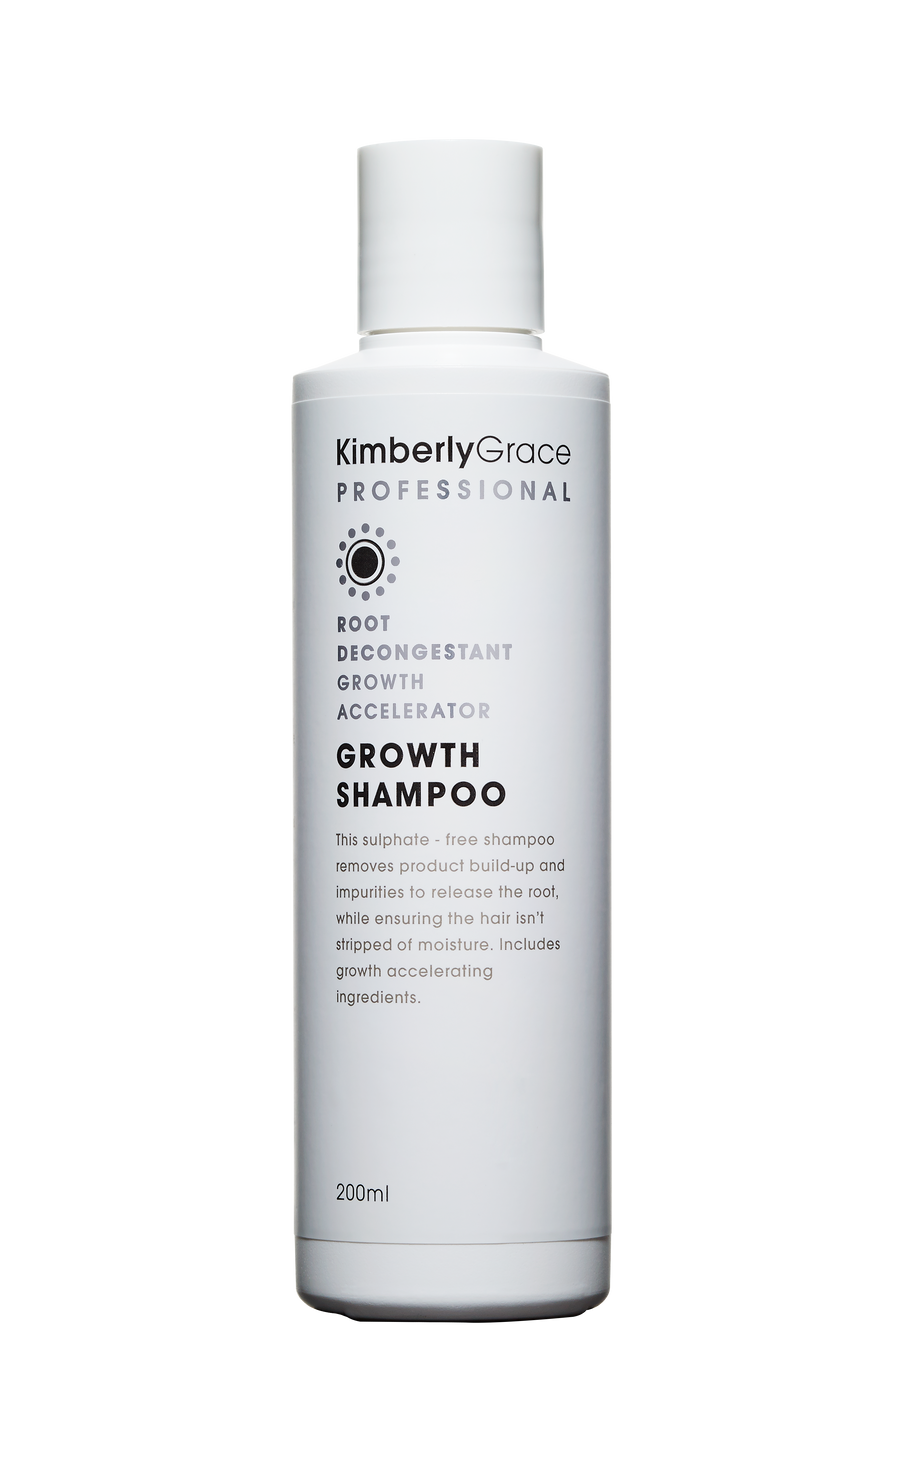 Growth Shampoo